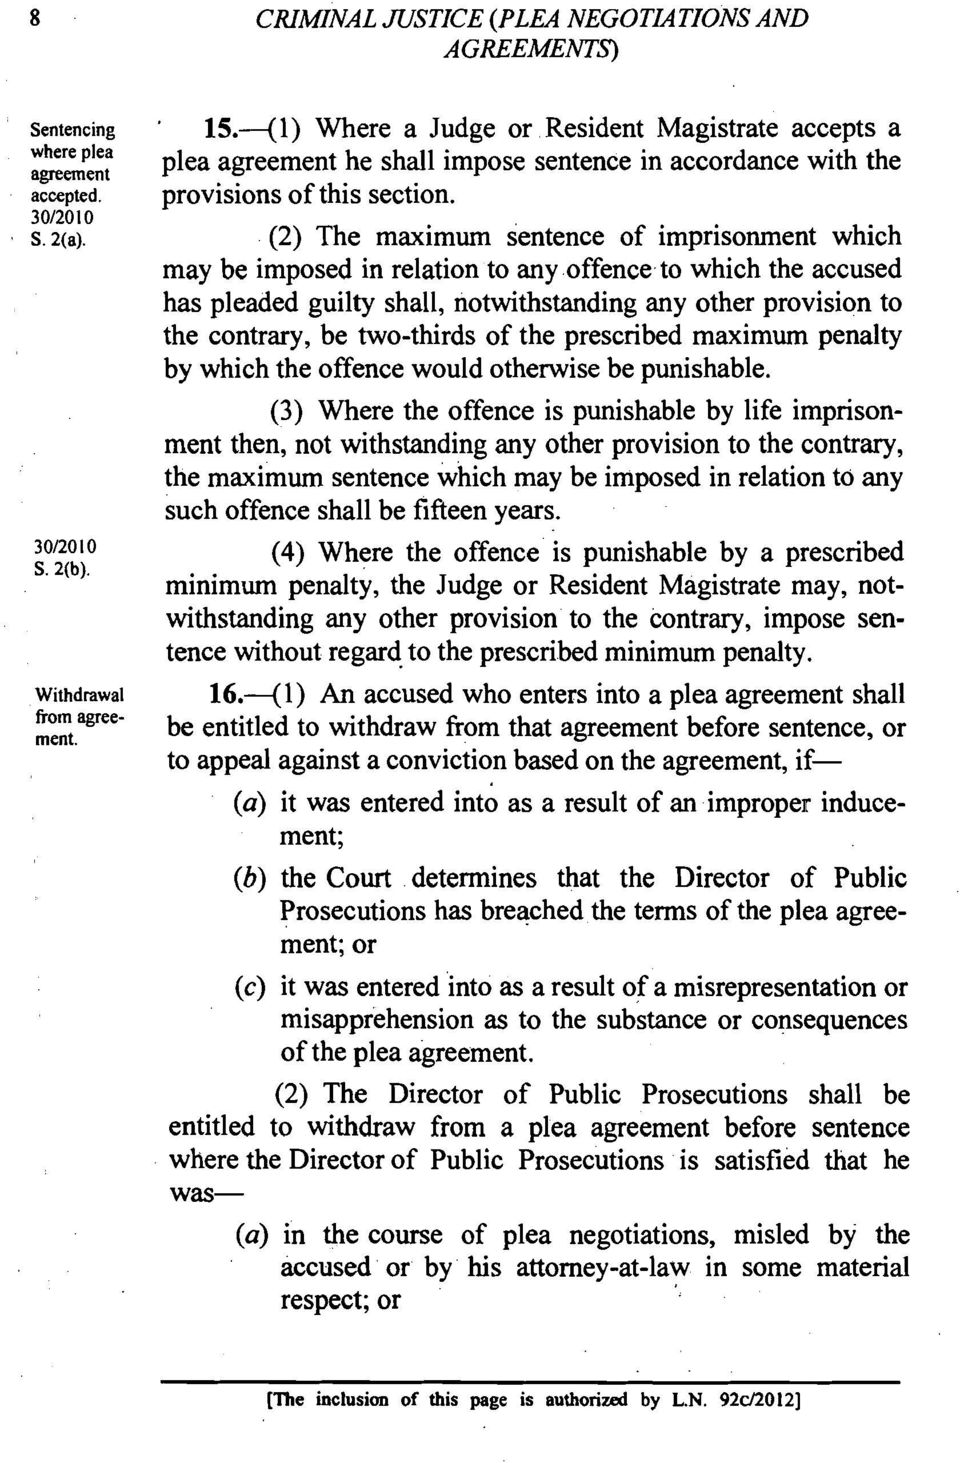 (2) The maximum sentence of imprisonment which may be imposed in relation to any offence to which the accused has pleaded guilty shall, notwithstanding any other provision to the contrary, be